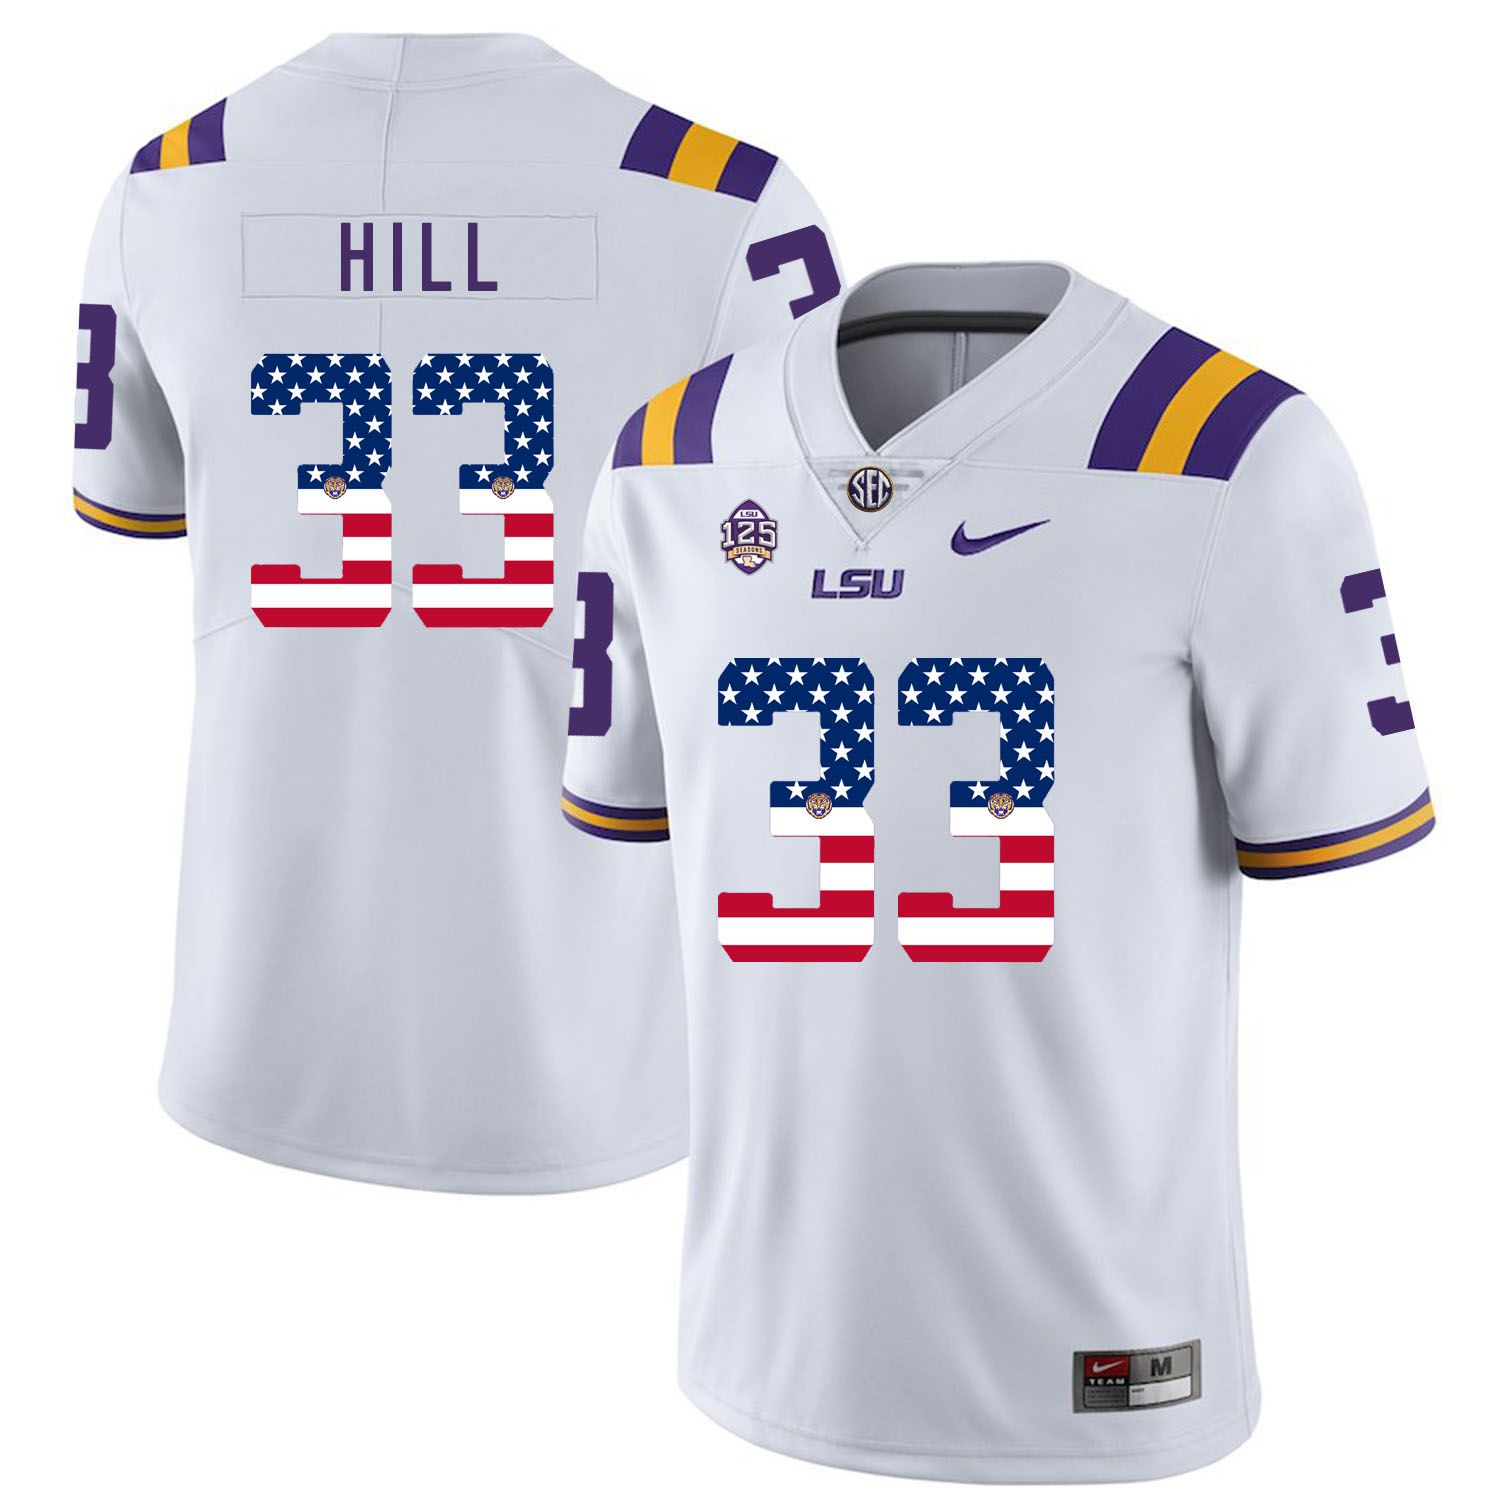 Men LSU Tigers 33 Hill White Flag Customized NCAA Jerseys